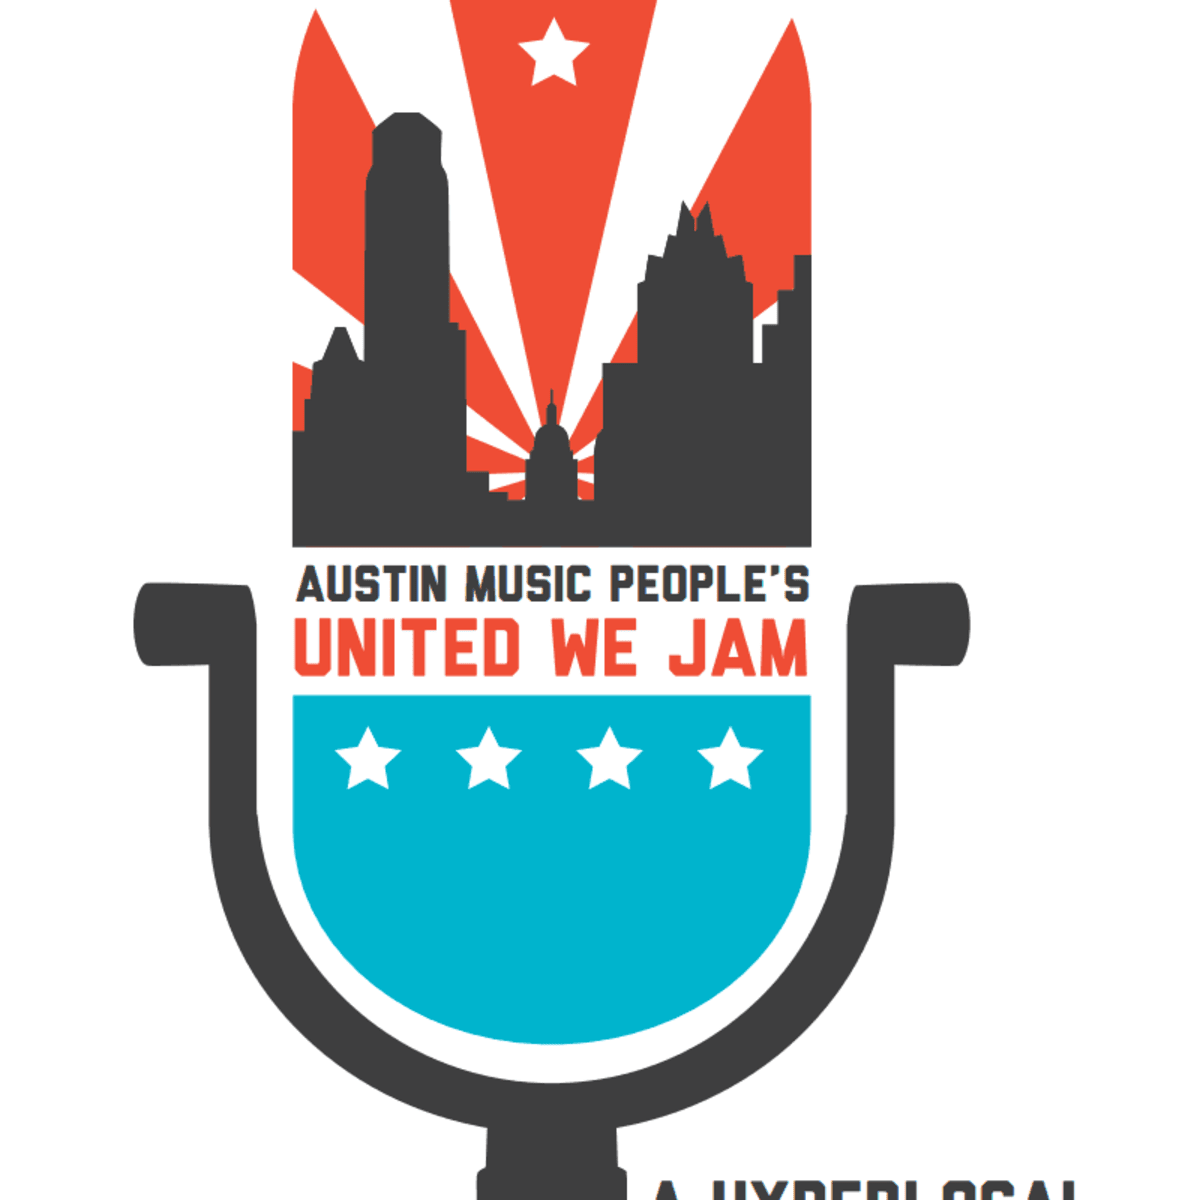 Austin Music People AMP United We Jam poster 2013